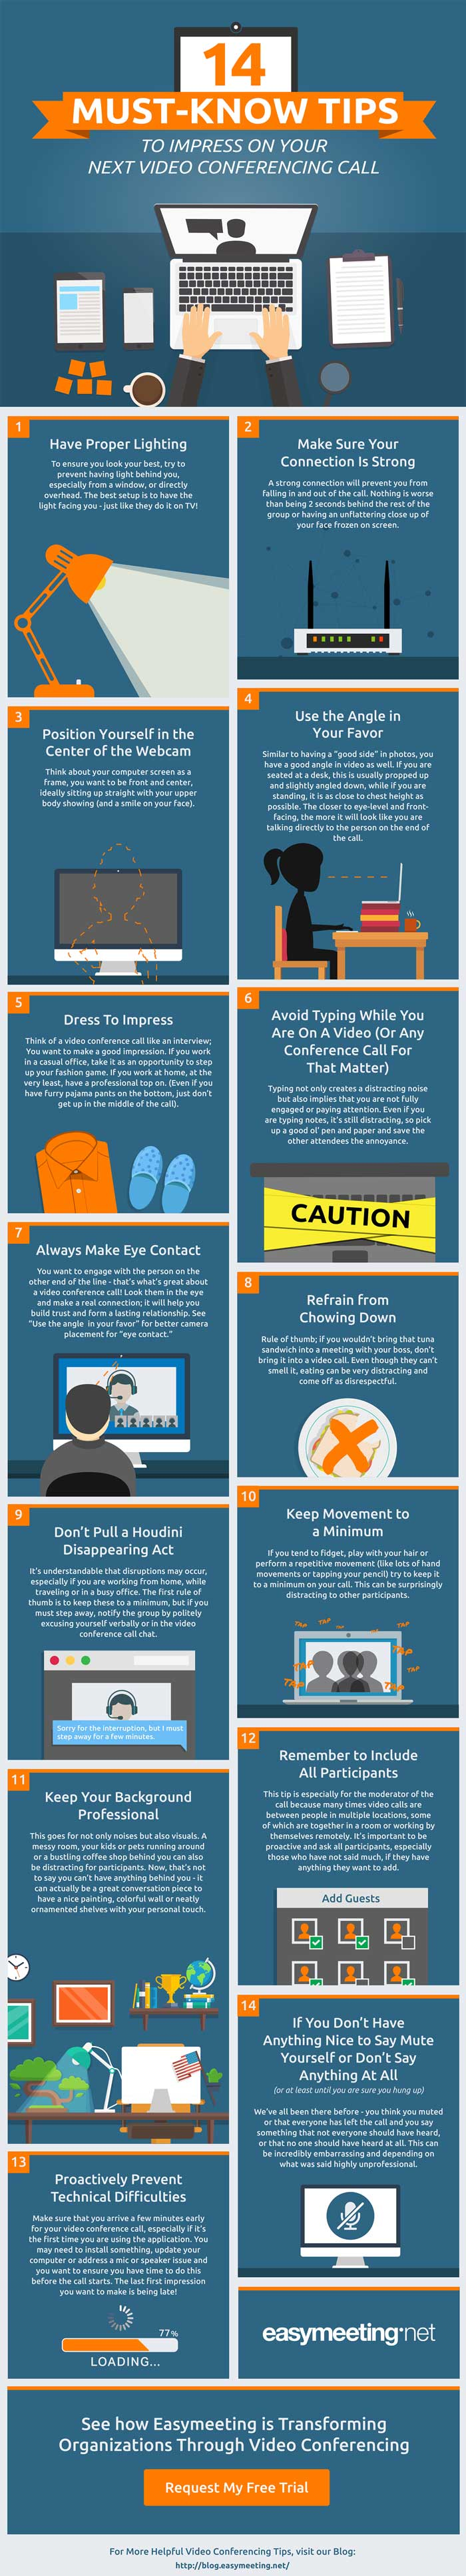 14-Must-Know-Tips-To-Impress-On-Your-Next-Video-Conferencing-Call-Final.jpg